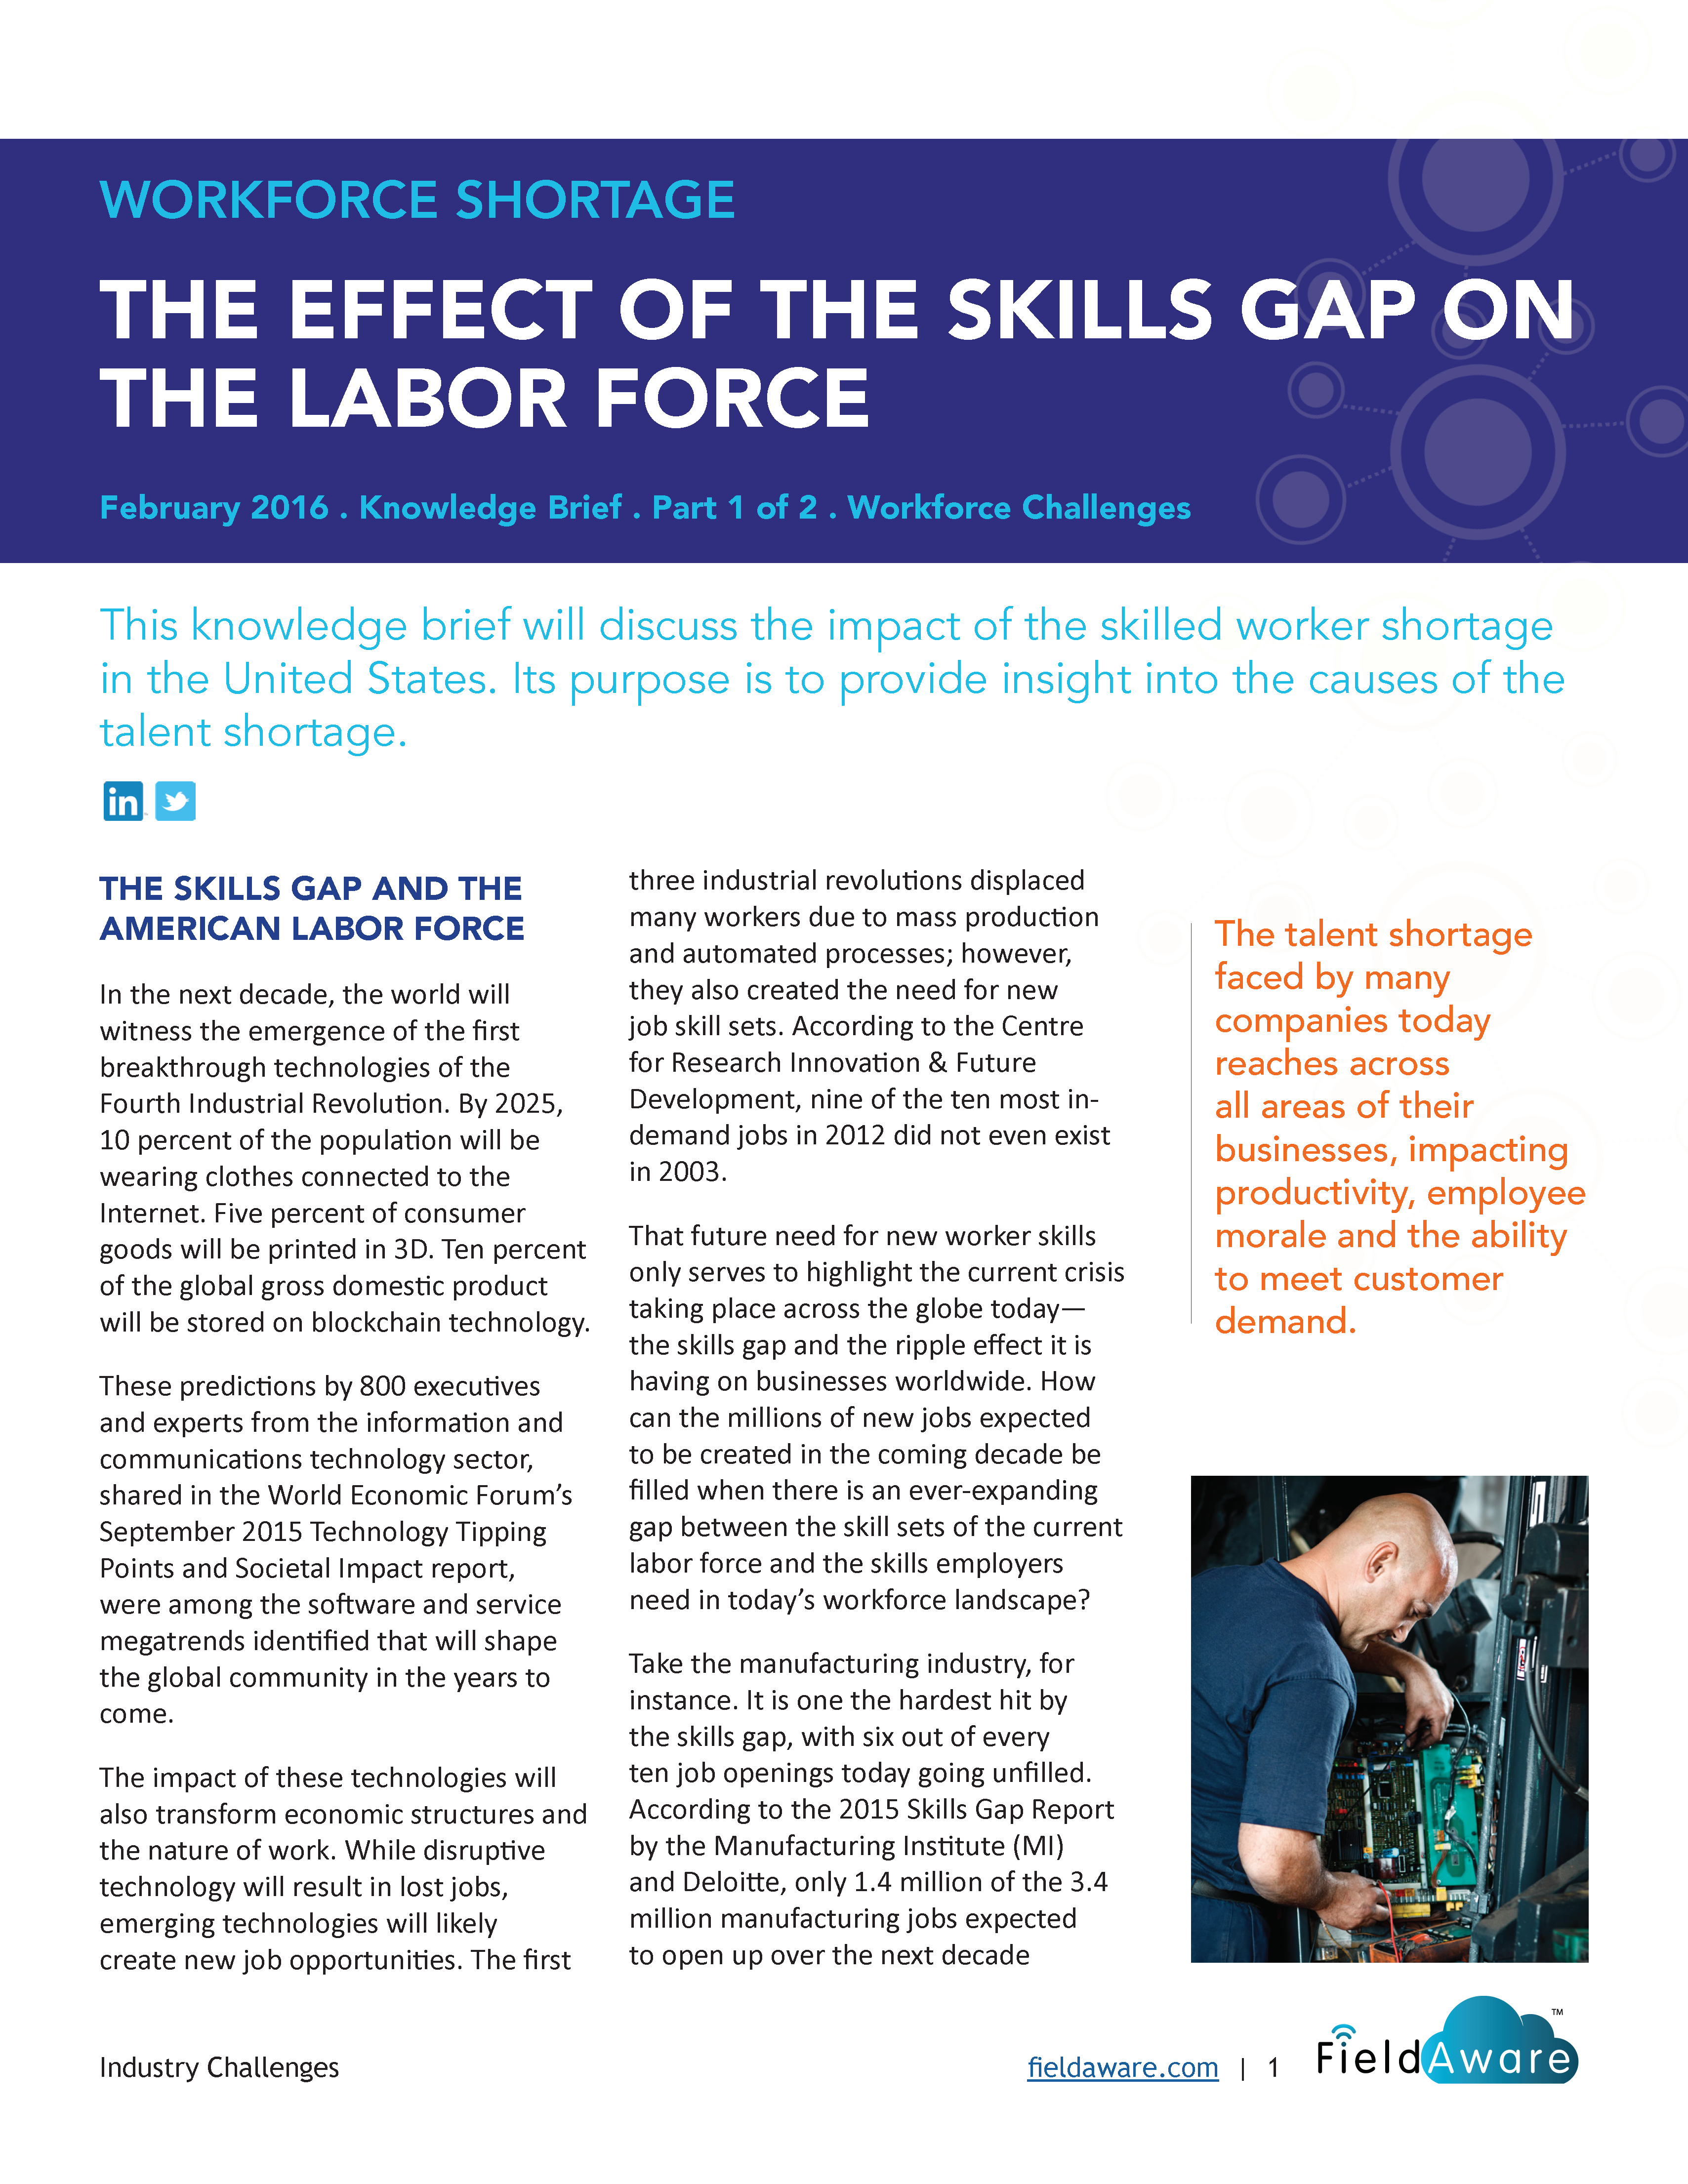 Workforce Shortage The Effect Of The Skills Gap On The Labor Force - Part 1 White Paper